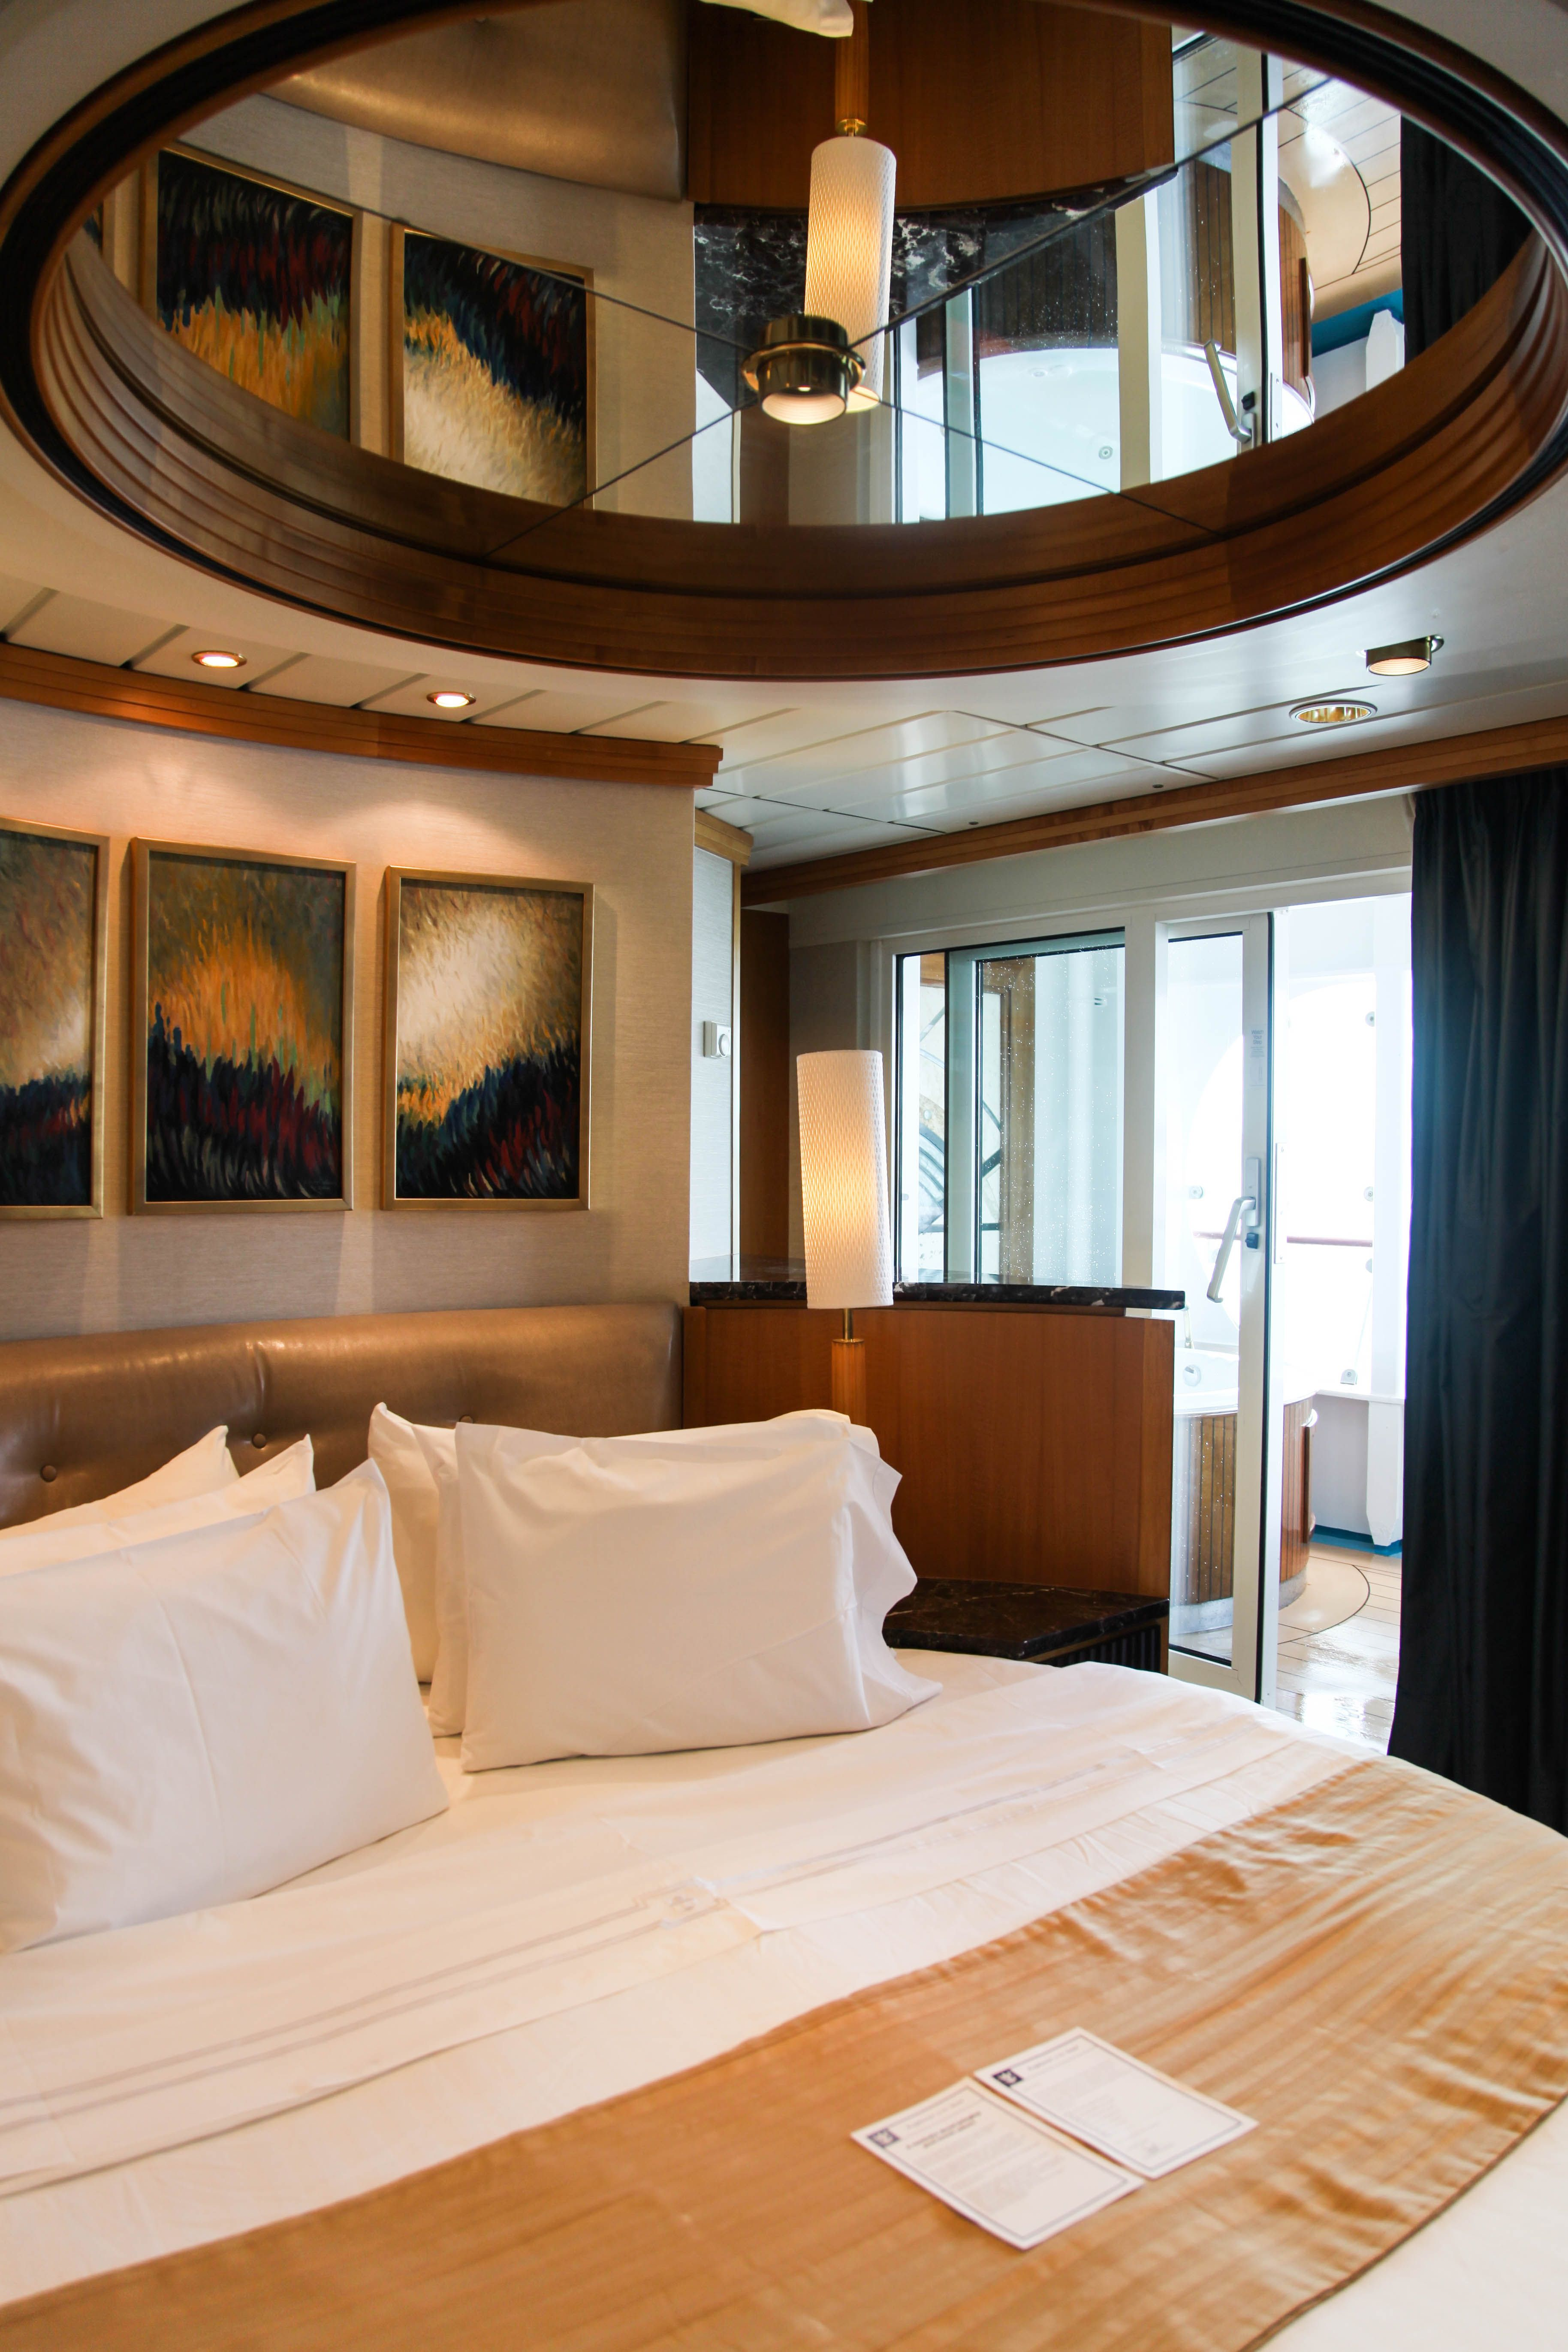 17 best staterooms onboard images on pinterest of the seas